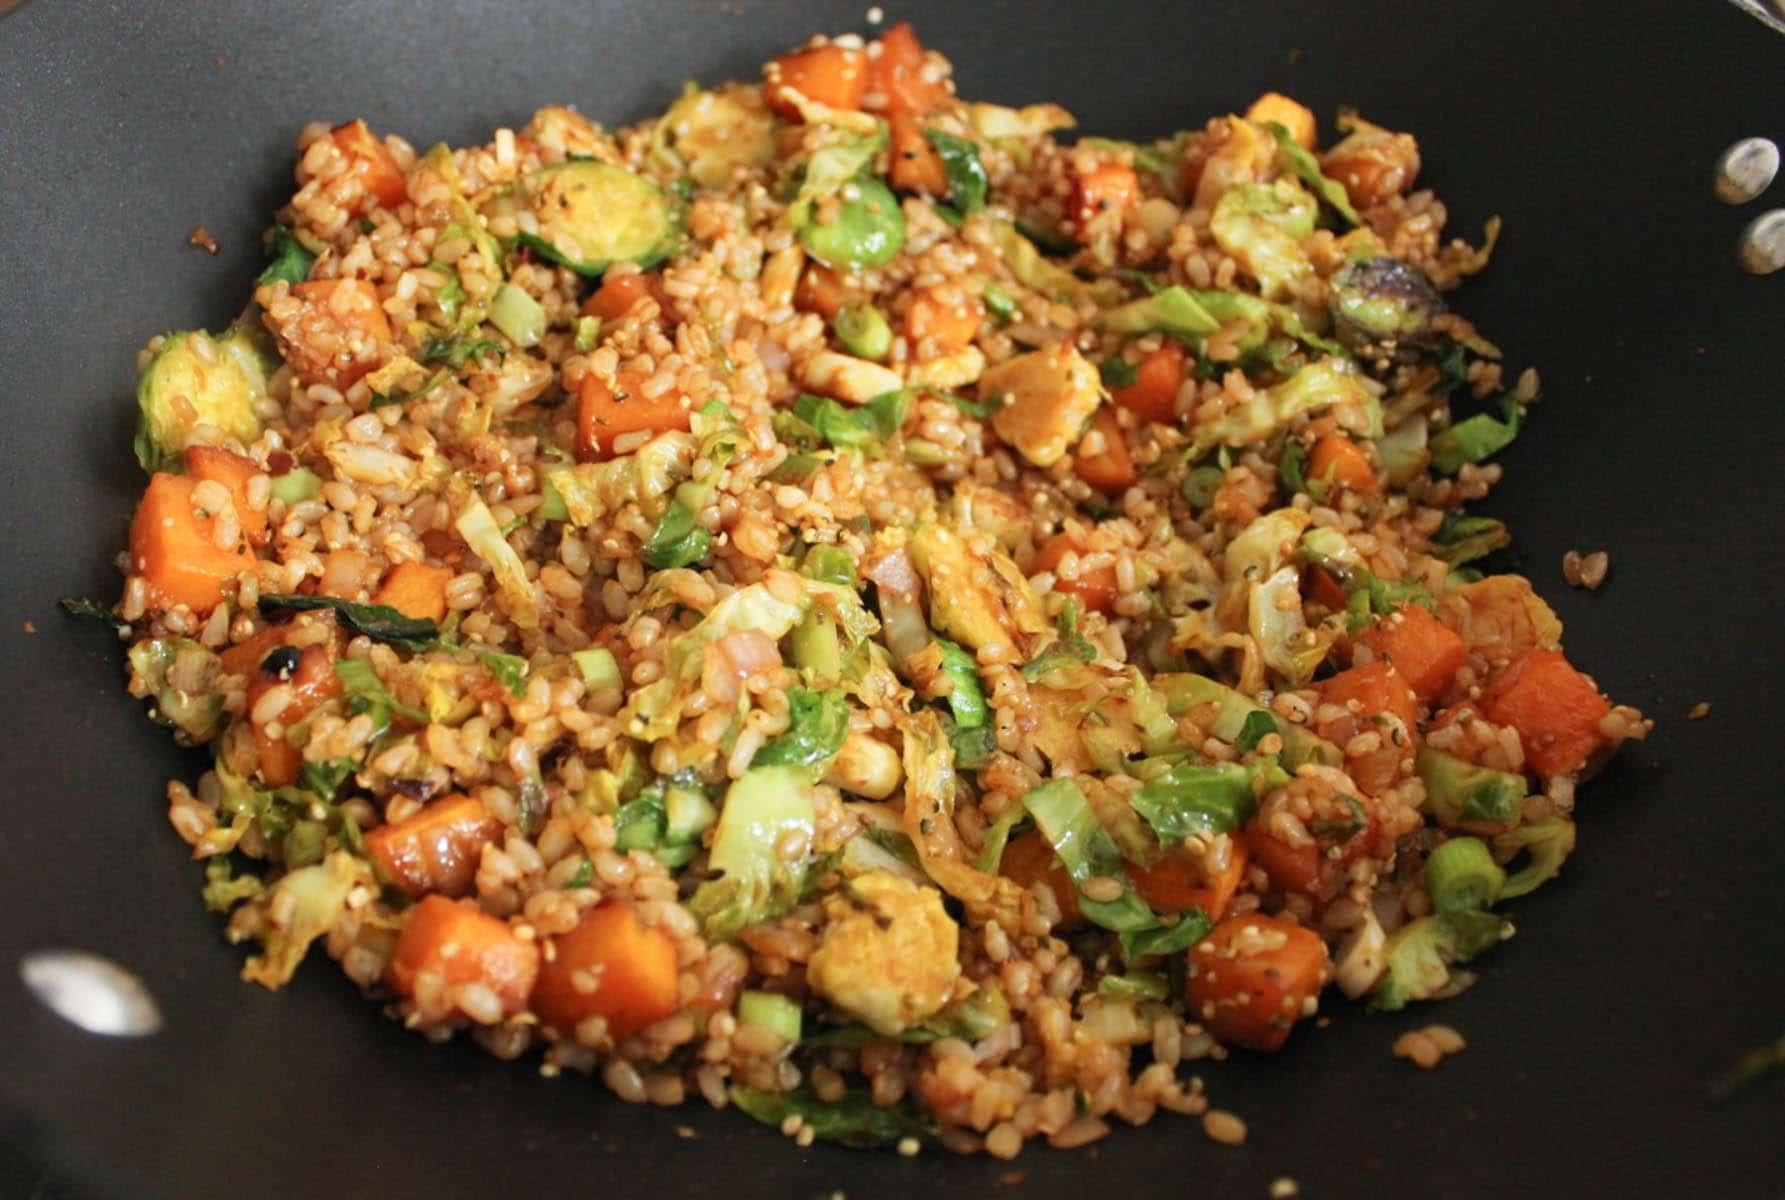 Add the roasted squash and Brussels sprouts to the pan along with the ...